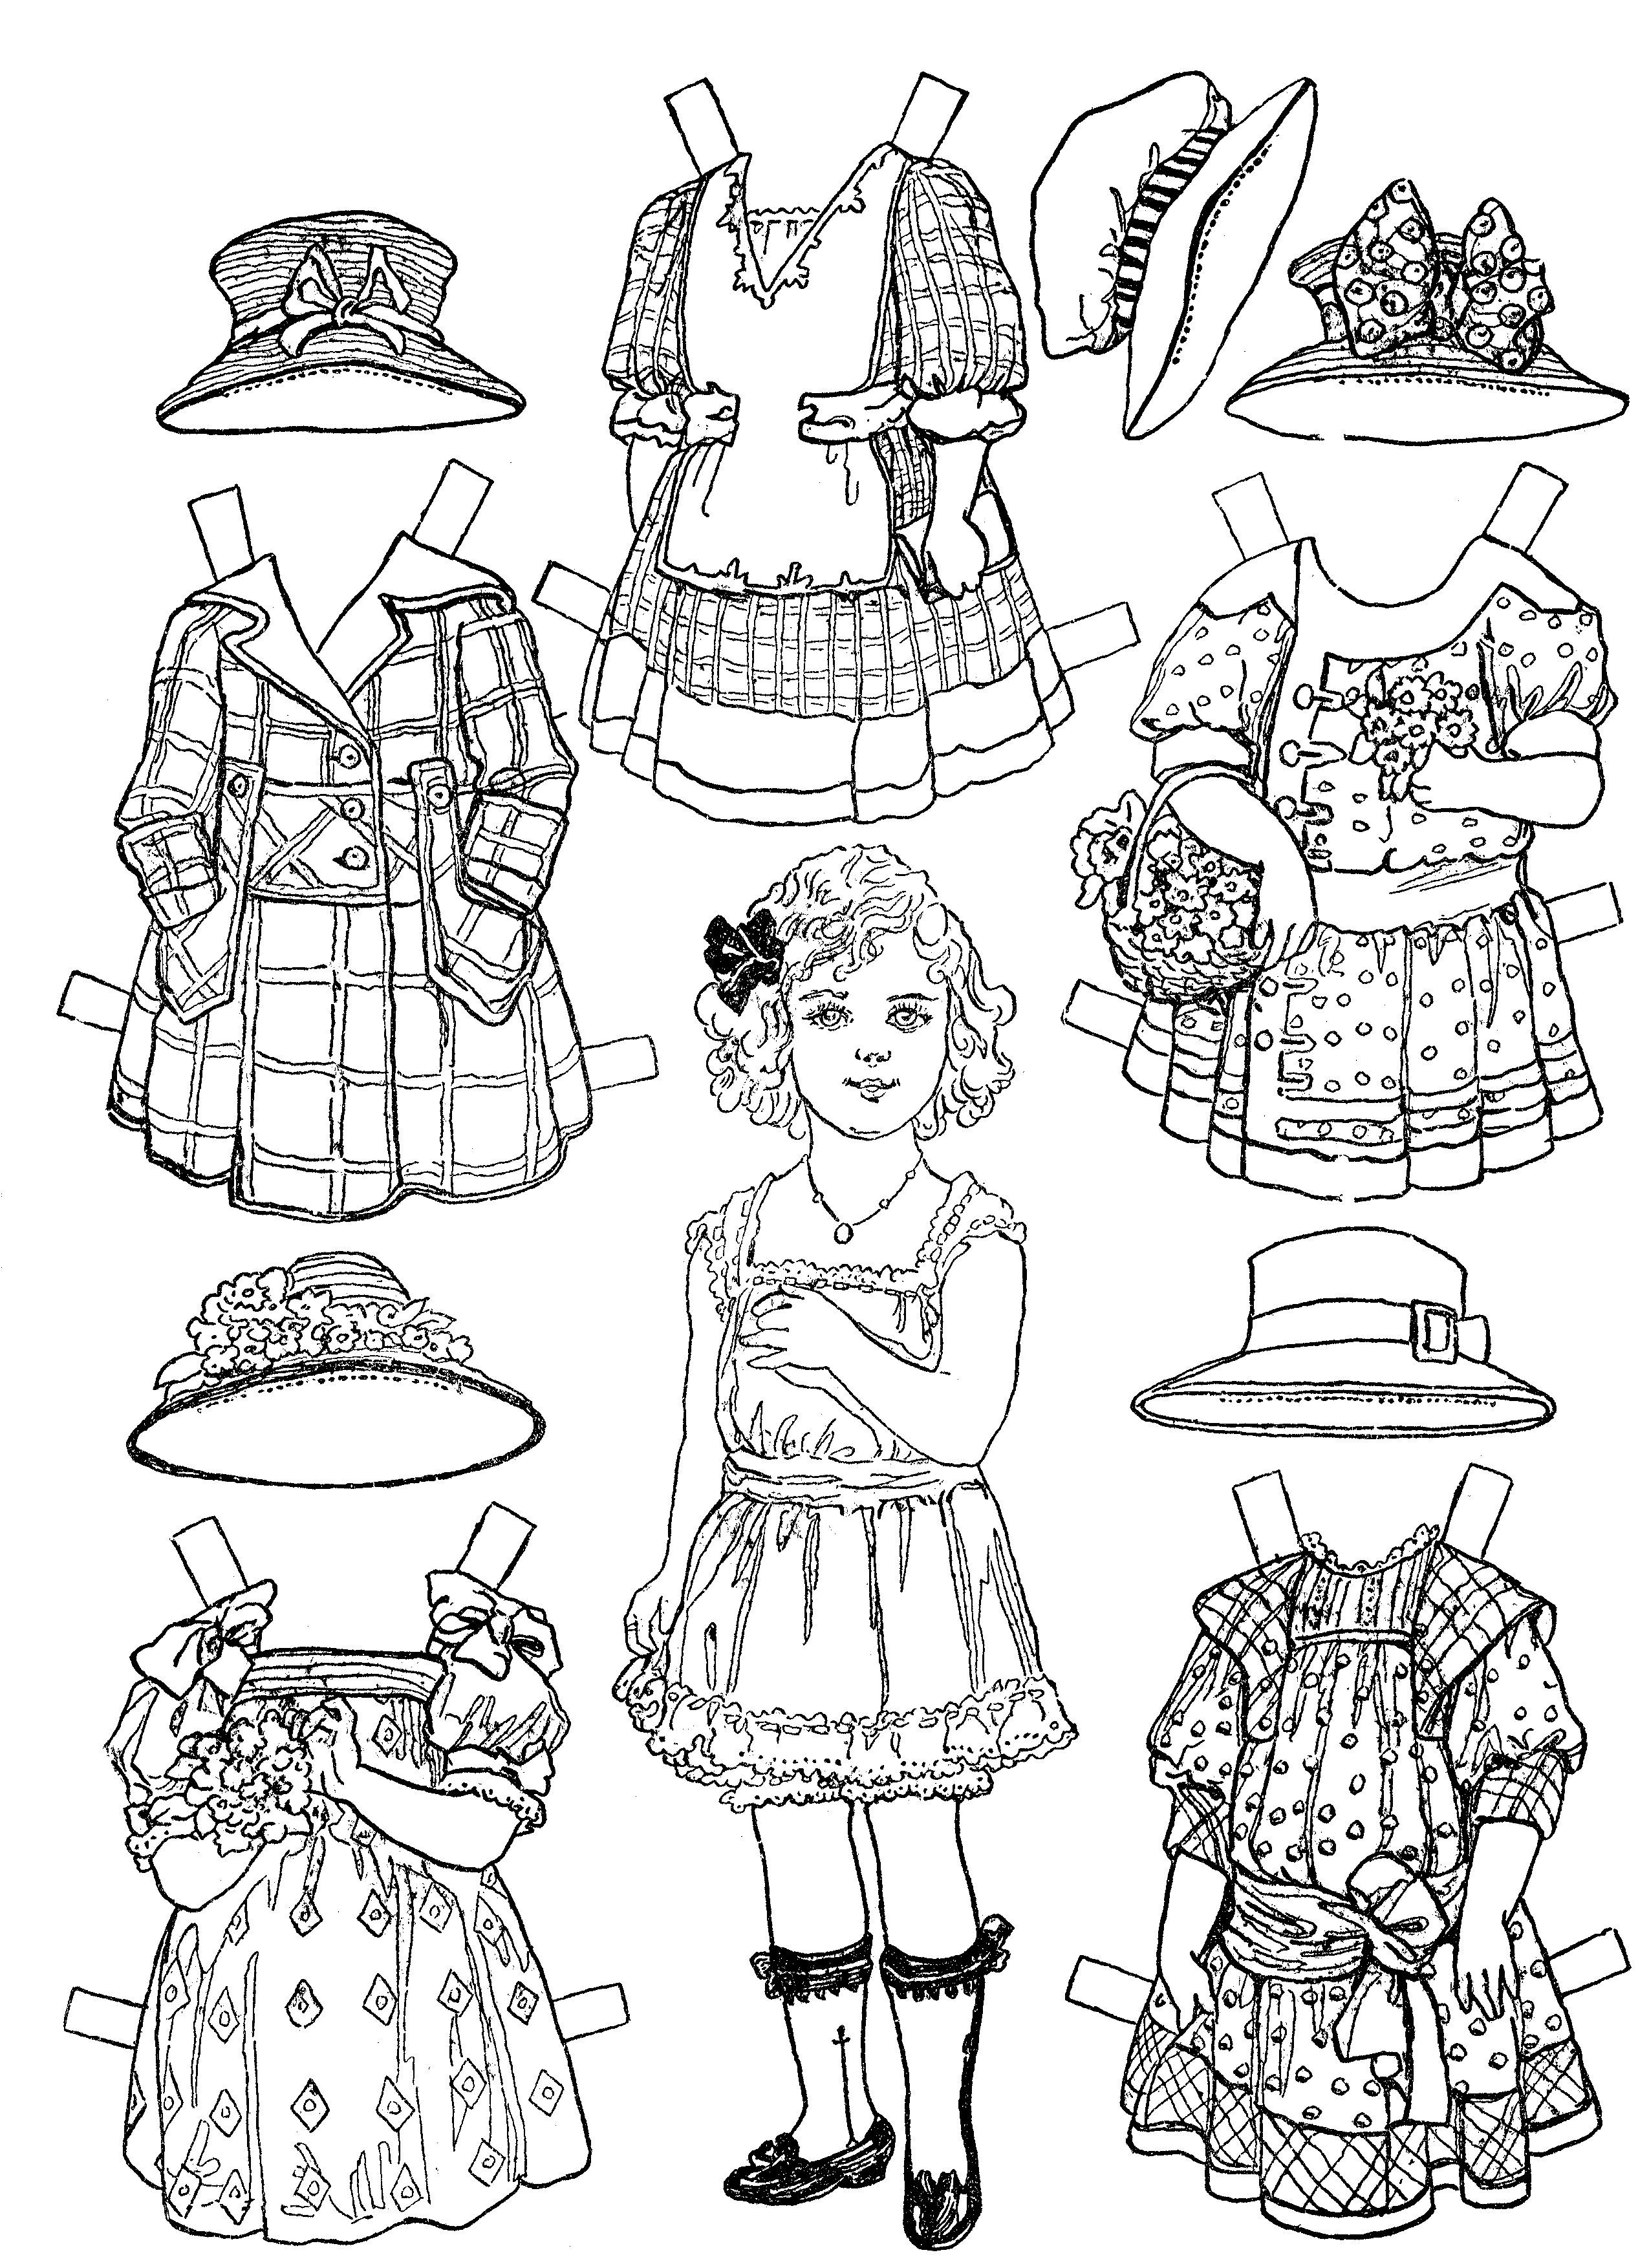 Paper Dolls And Paper Doll Dresses Printable From Kid